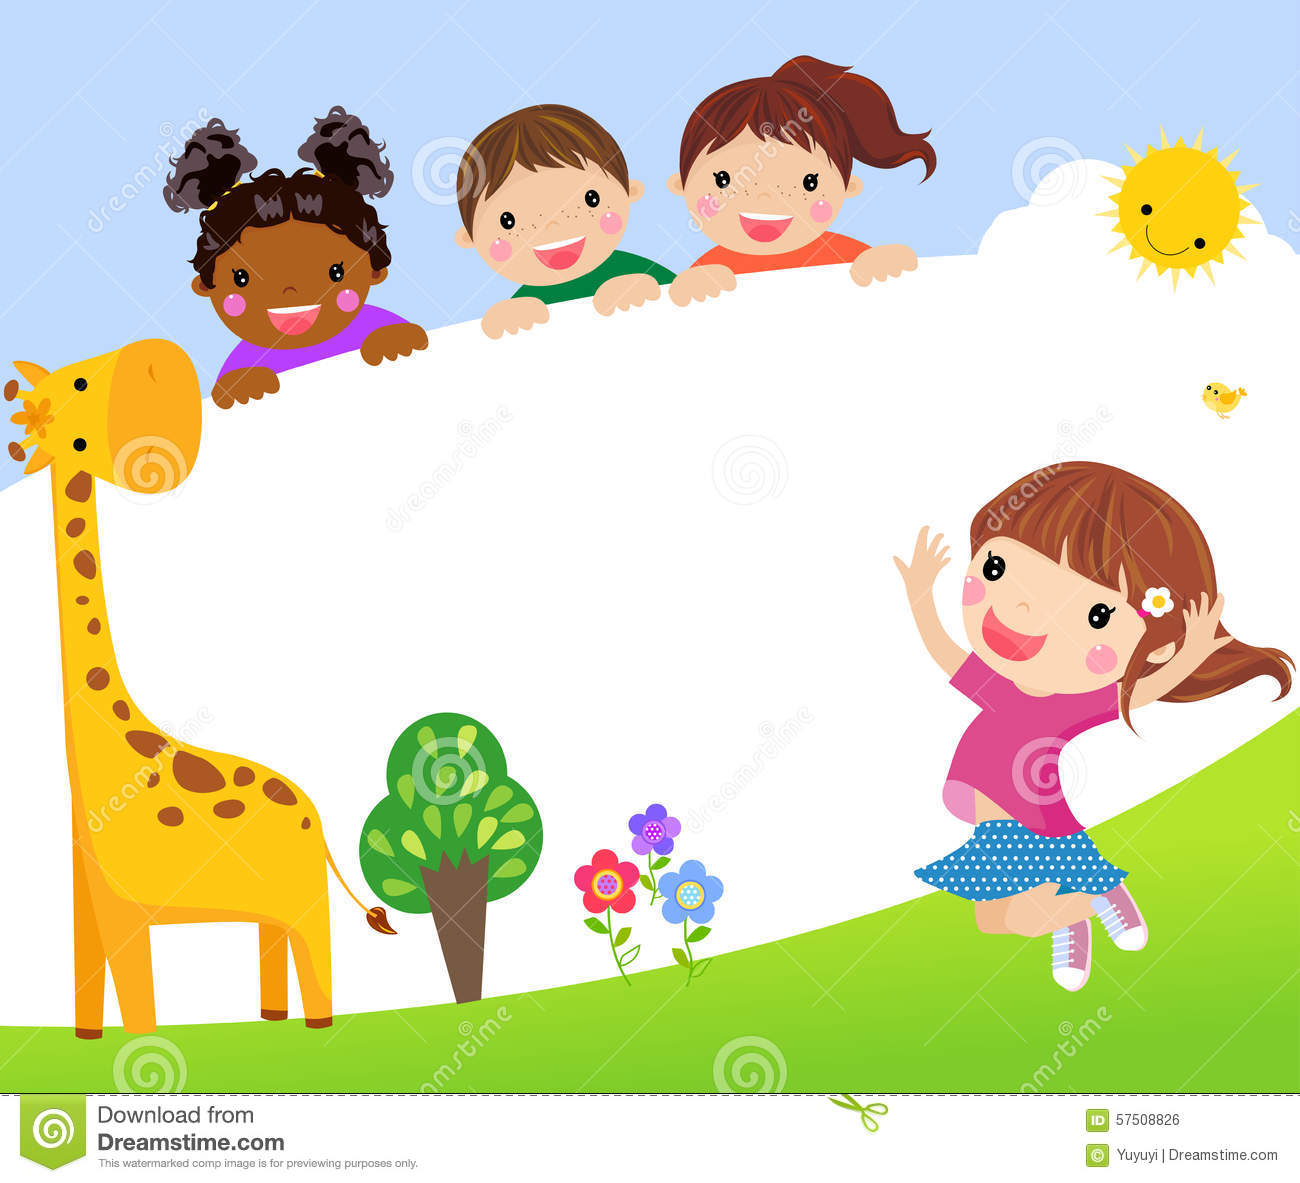 Color Frame With Group Of Kids And Giraffe Background